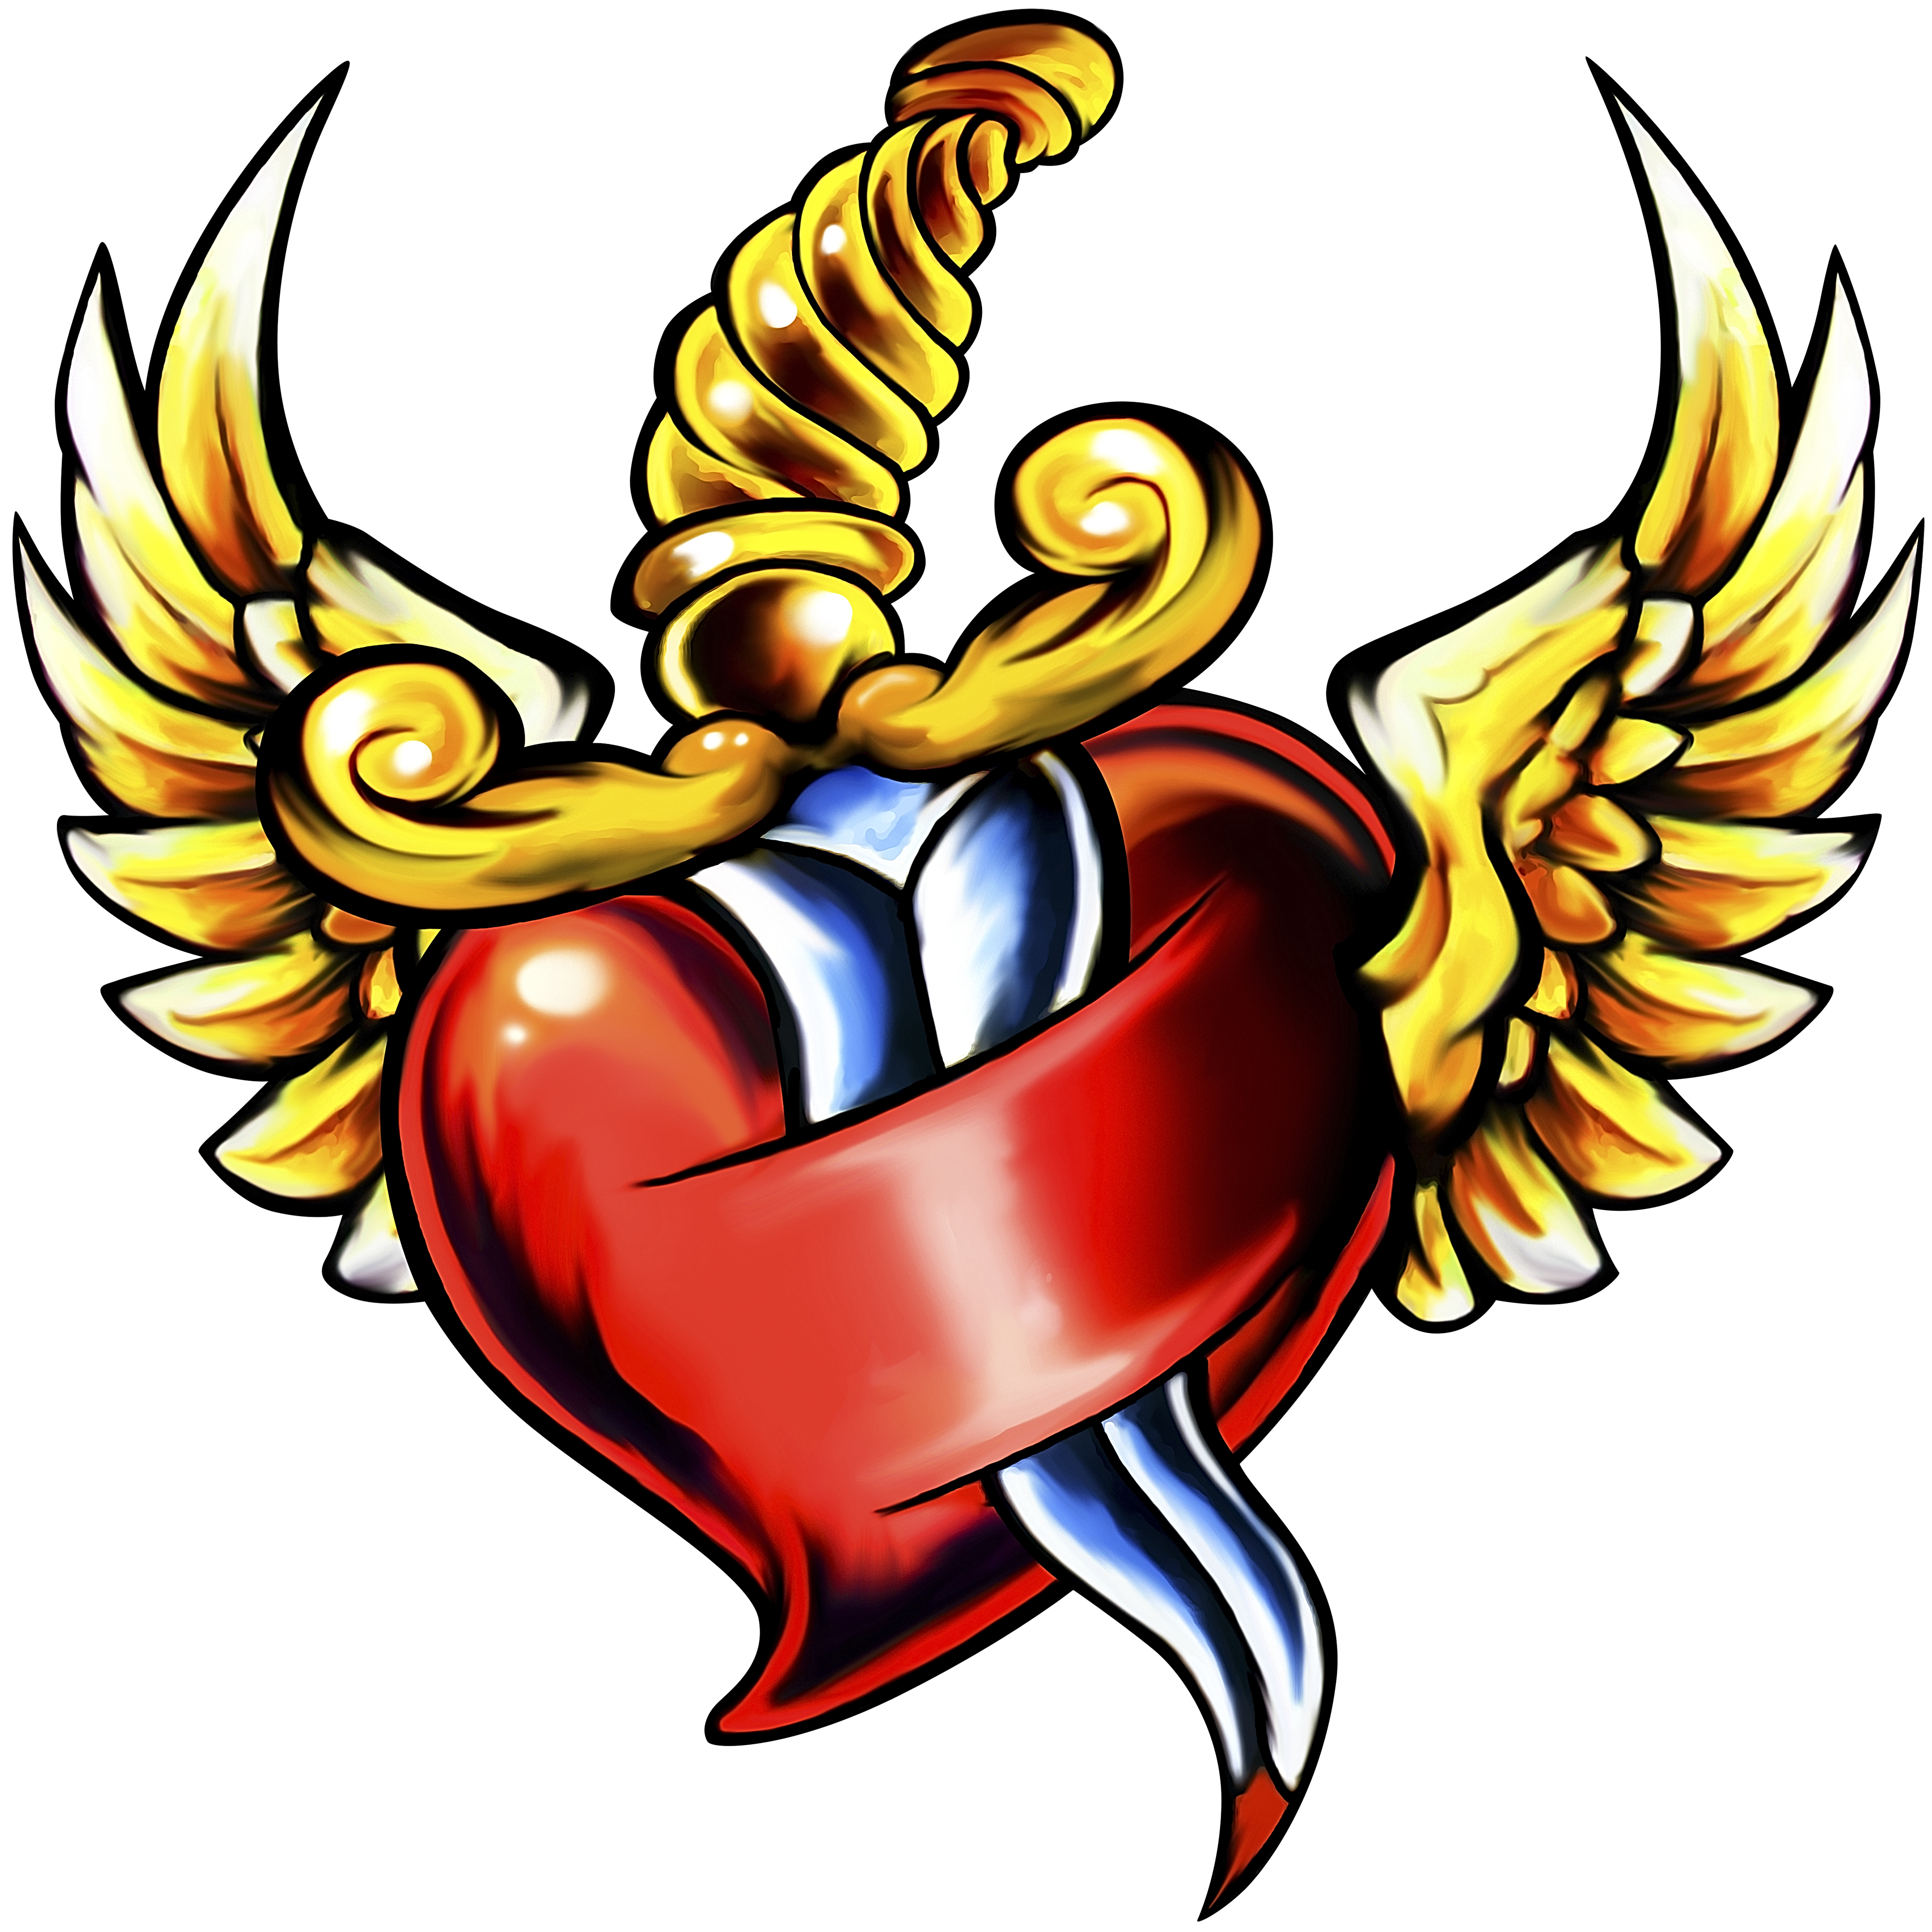 Dagger Heart Wings | Production Ready Artwork for T-Shirt Printing clip library library